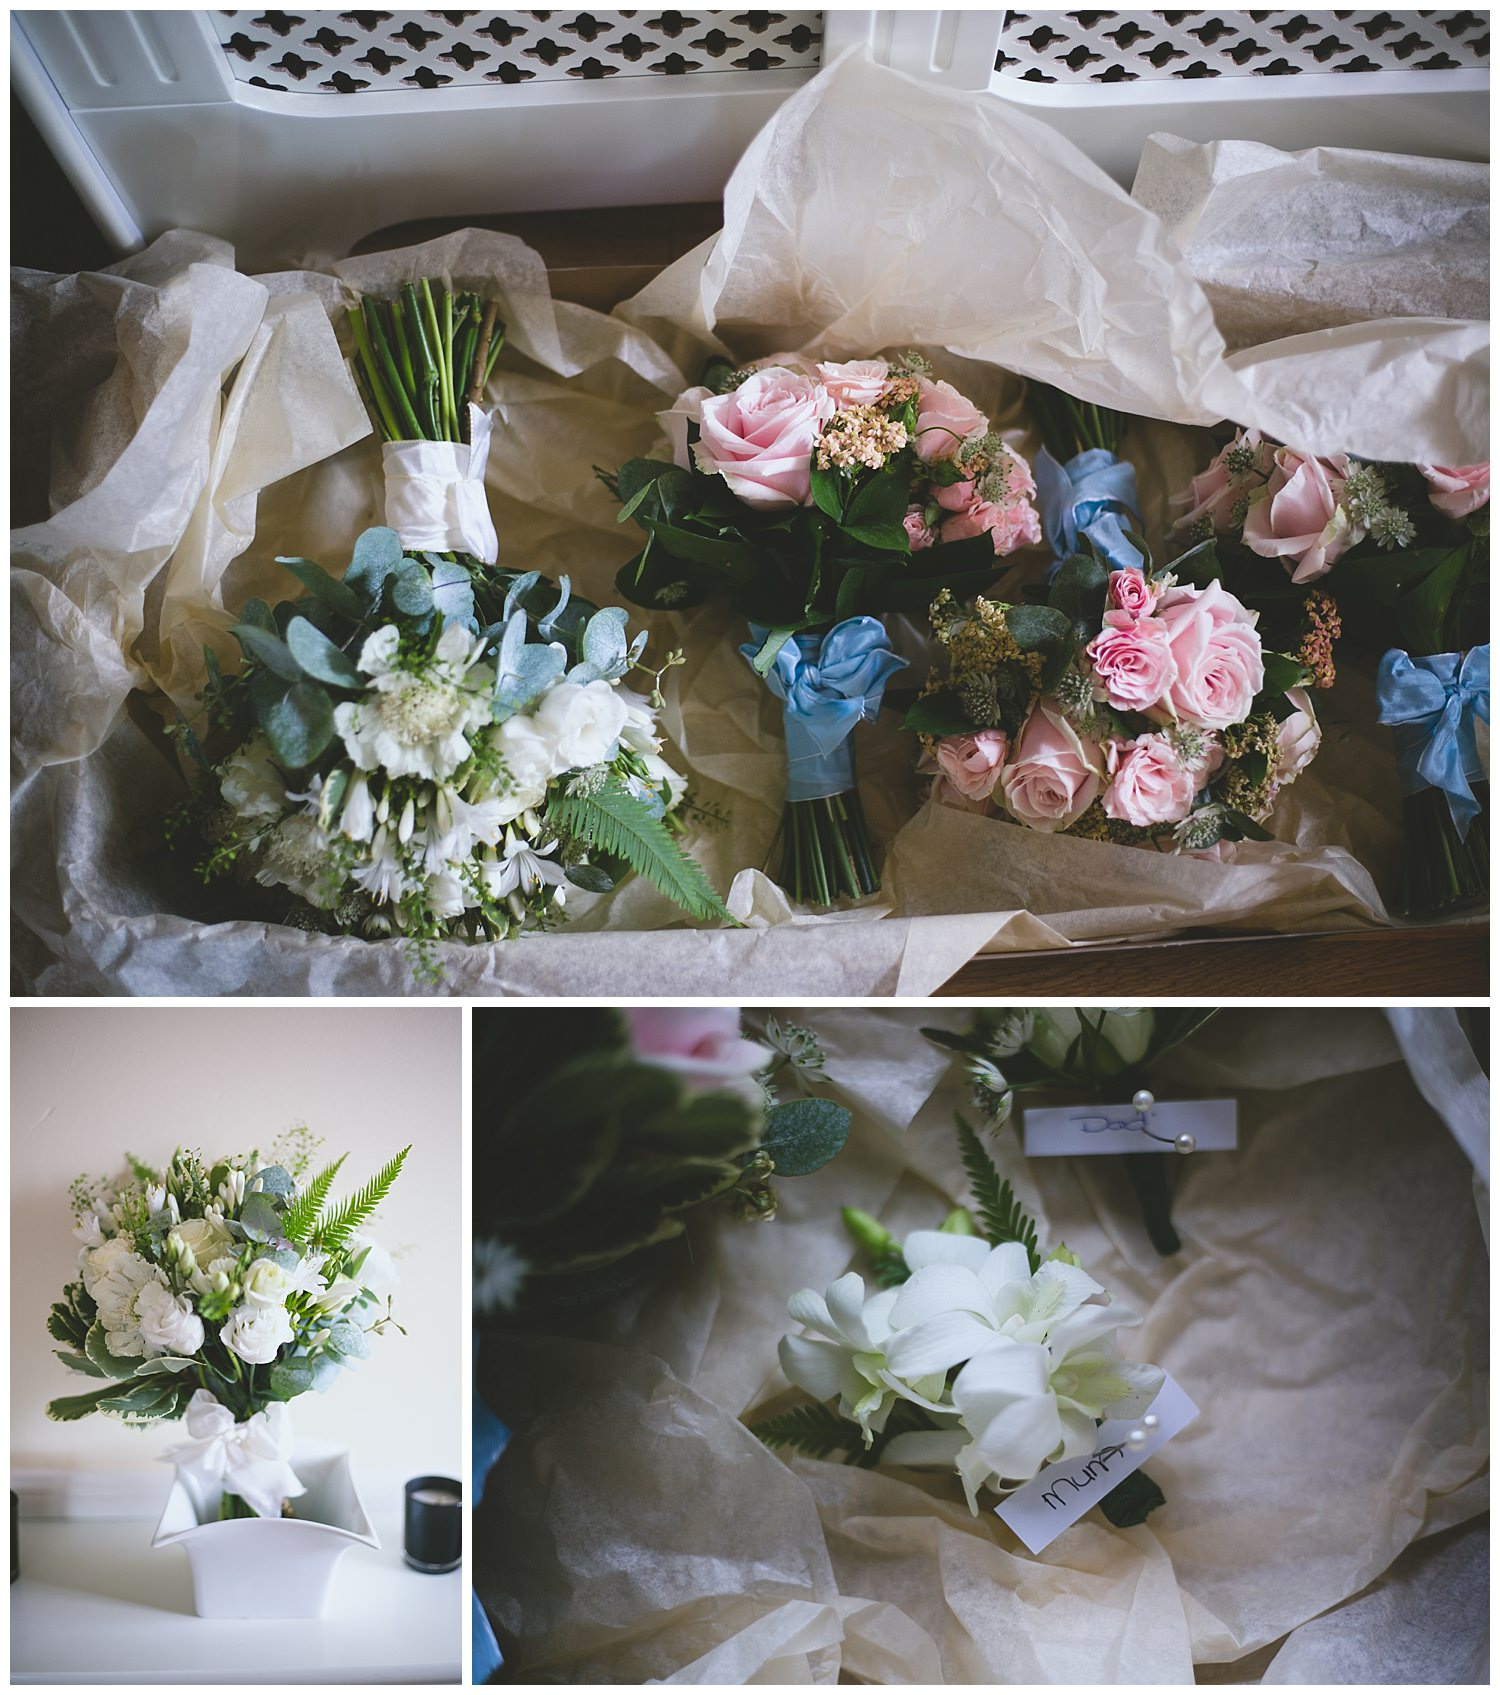 A mix of white and pink blush tone bouquets with blue ribbon